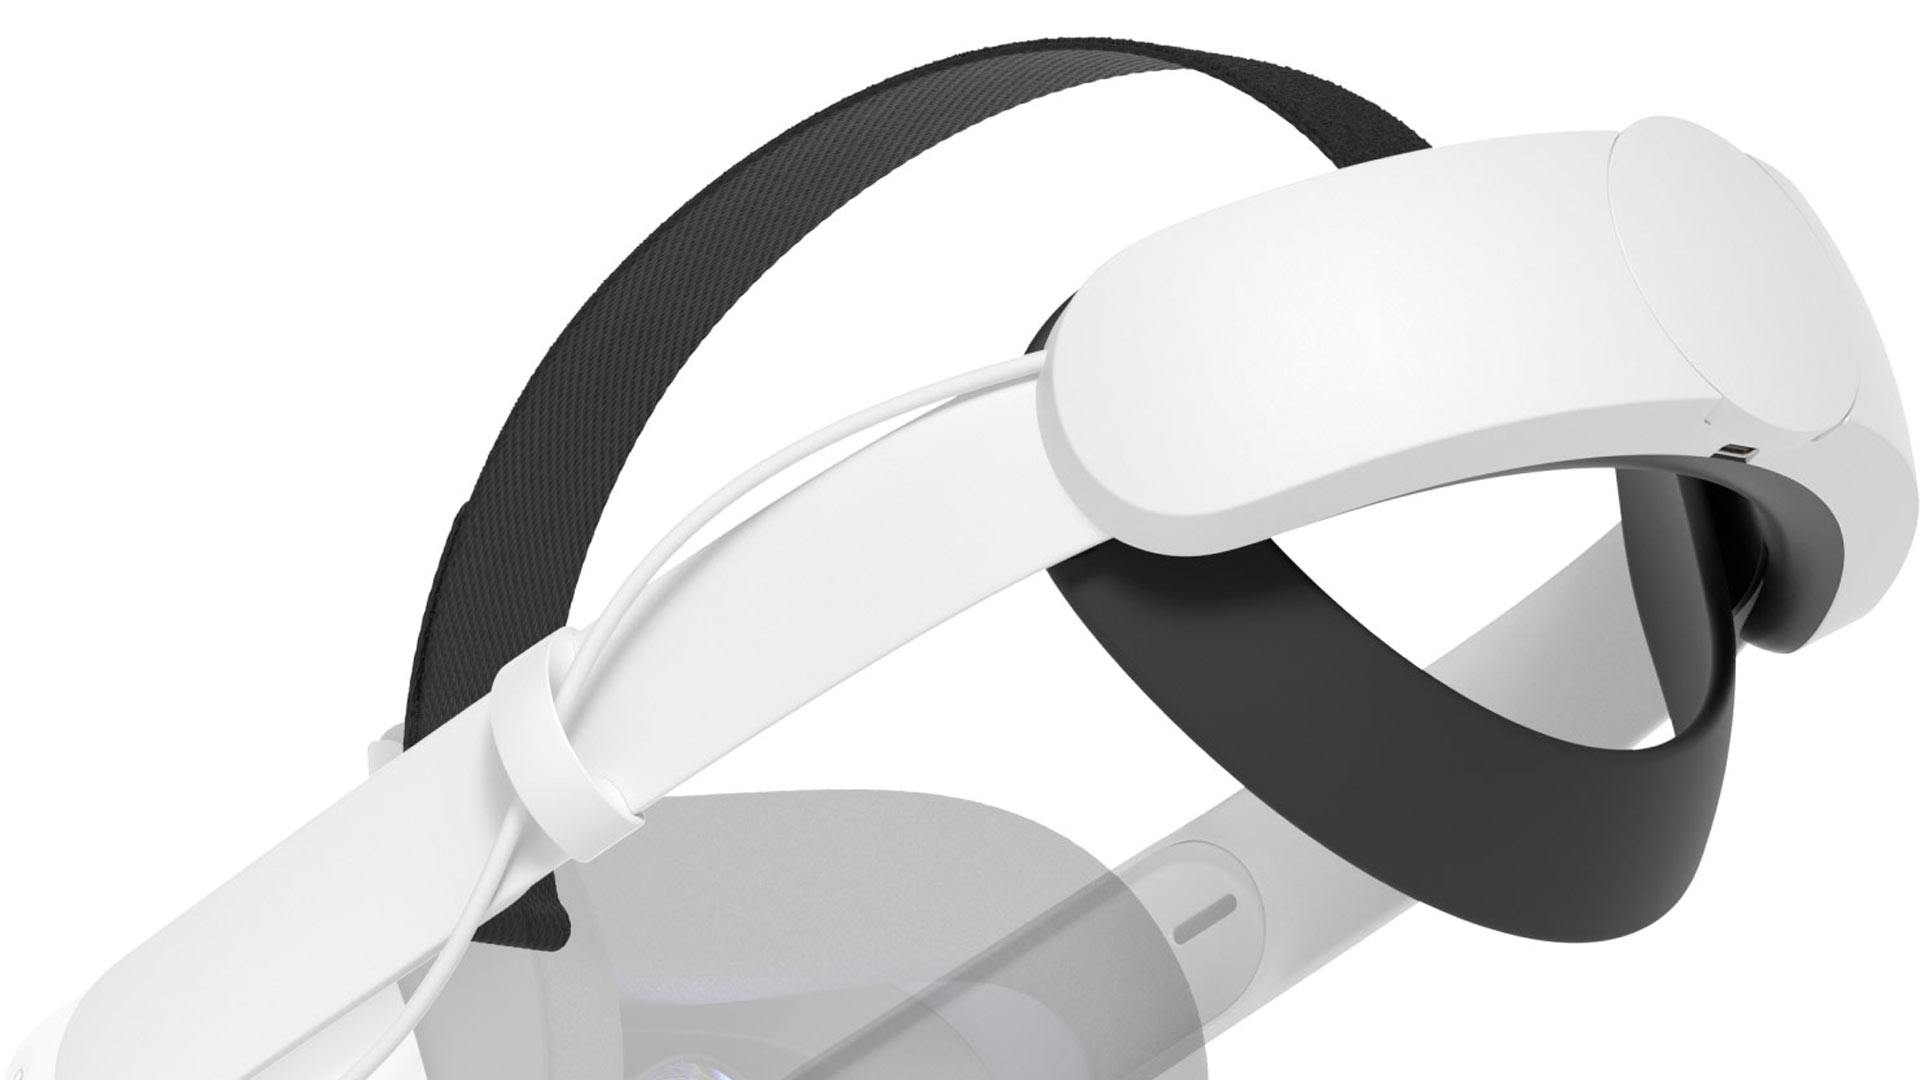 Oculus Delays Shipment of Quest 2 Elite Straps Amid Complaints of Premature Breakage